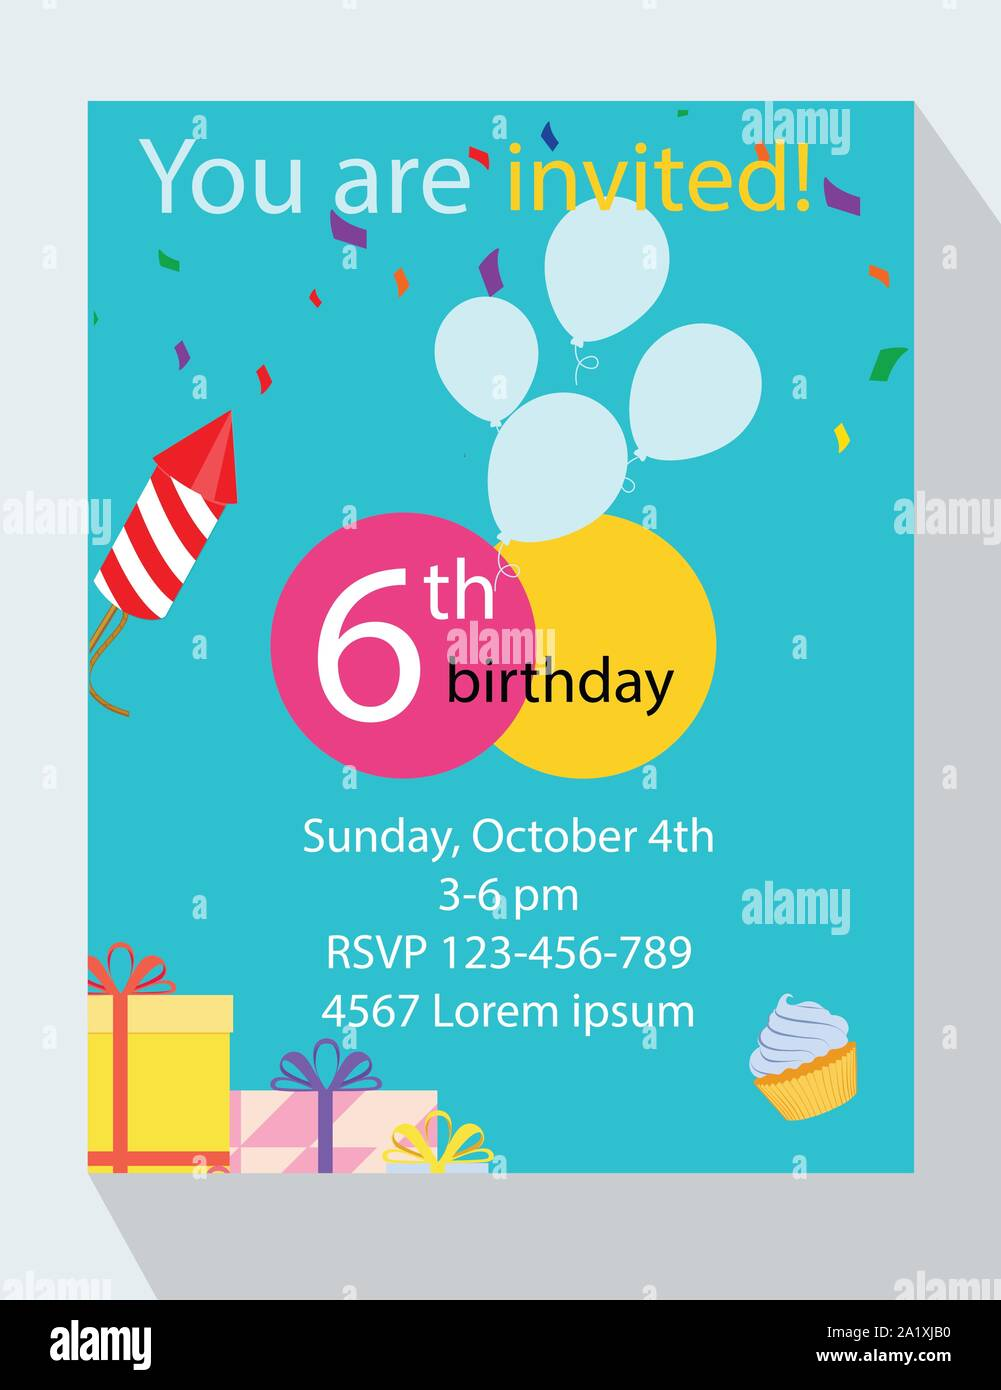 Birthday Party Invitation Card You Are Invited 6th